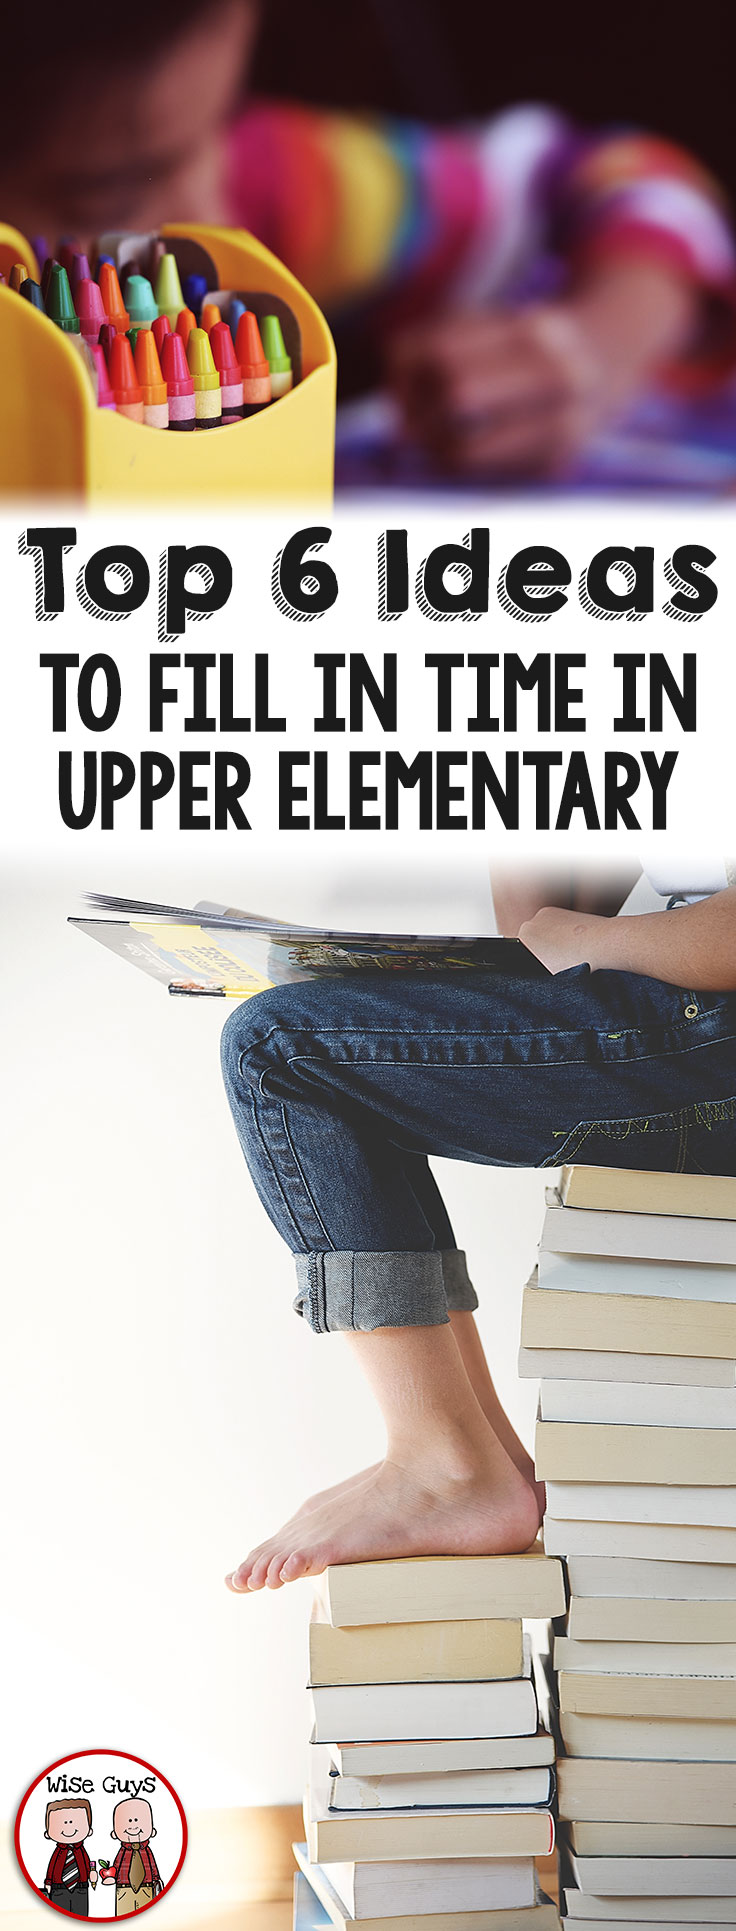 Ever have a dreaded unfilled awkward block of time that you can't fill with a lesson plan? Here's our top 6 ways for filling time in upper elementary classes!